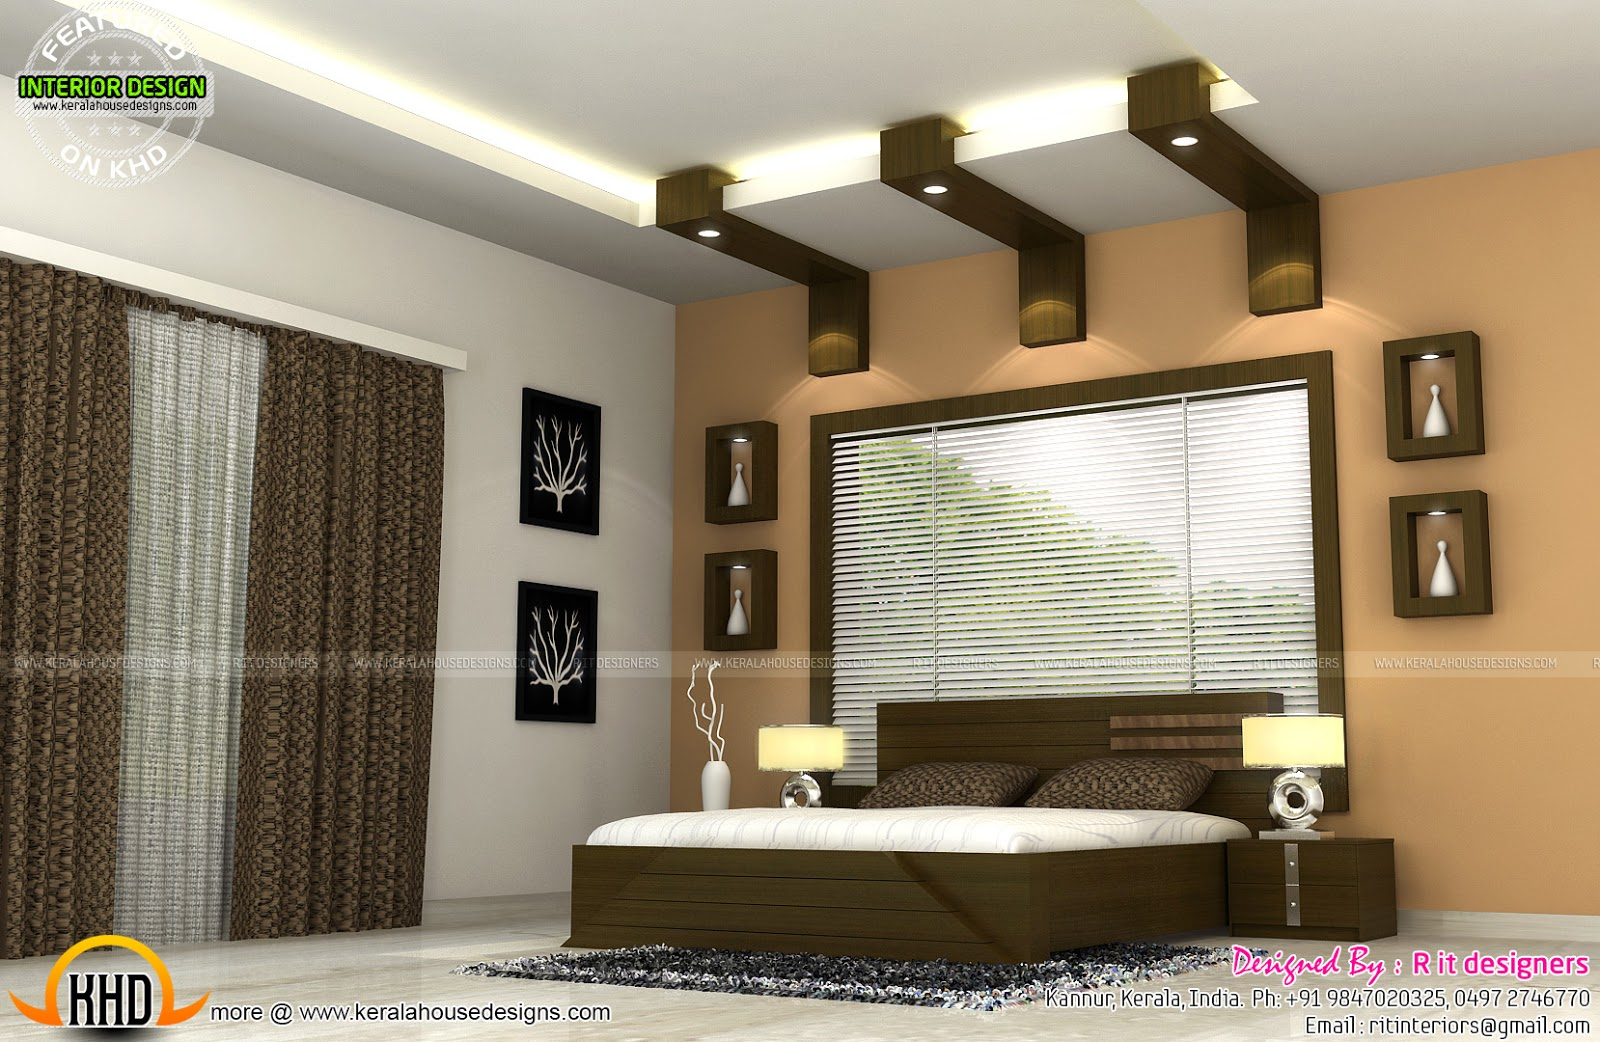 Interiors of bedrooms and kitchen kerala home design and for Home interior ideas